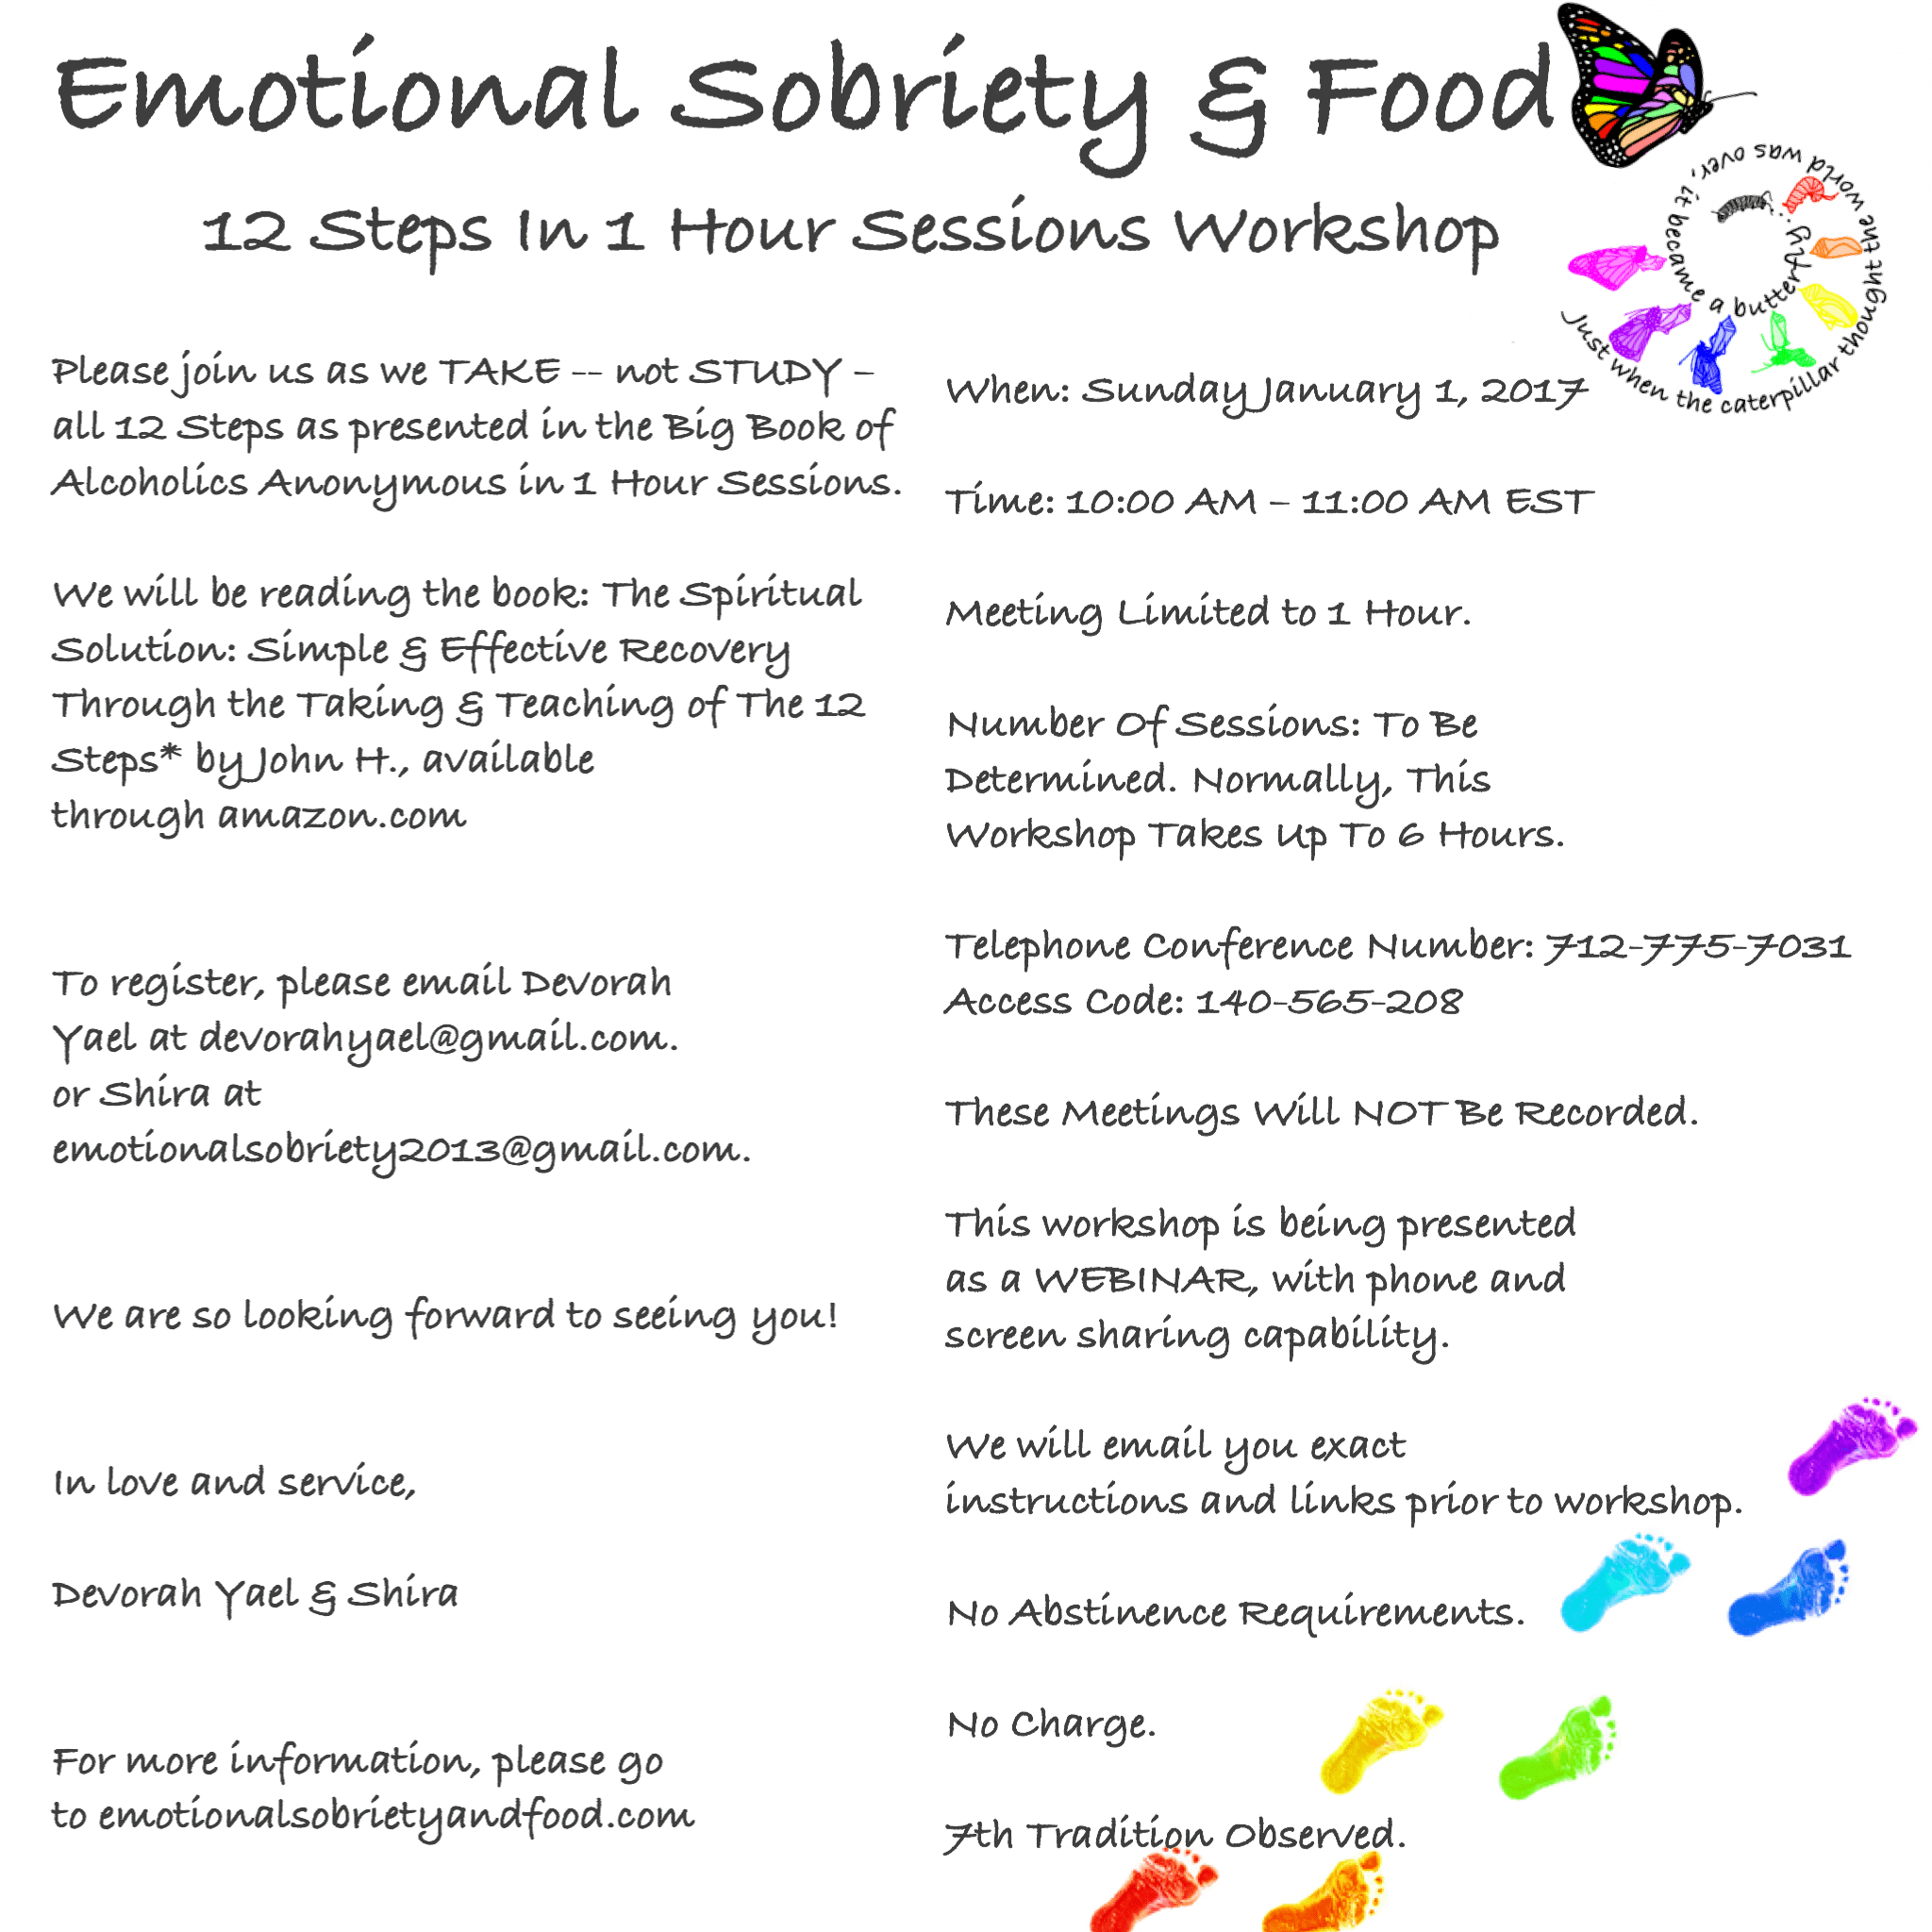 Emotional Sobriety And Food 12 Steps In 1 Hour Sessions